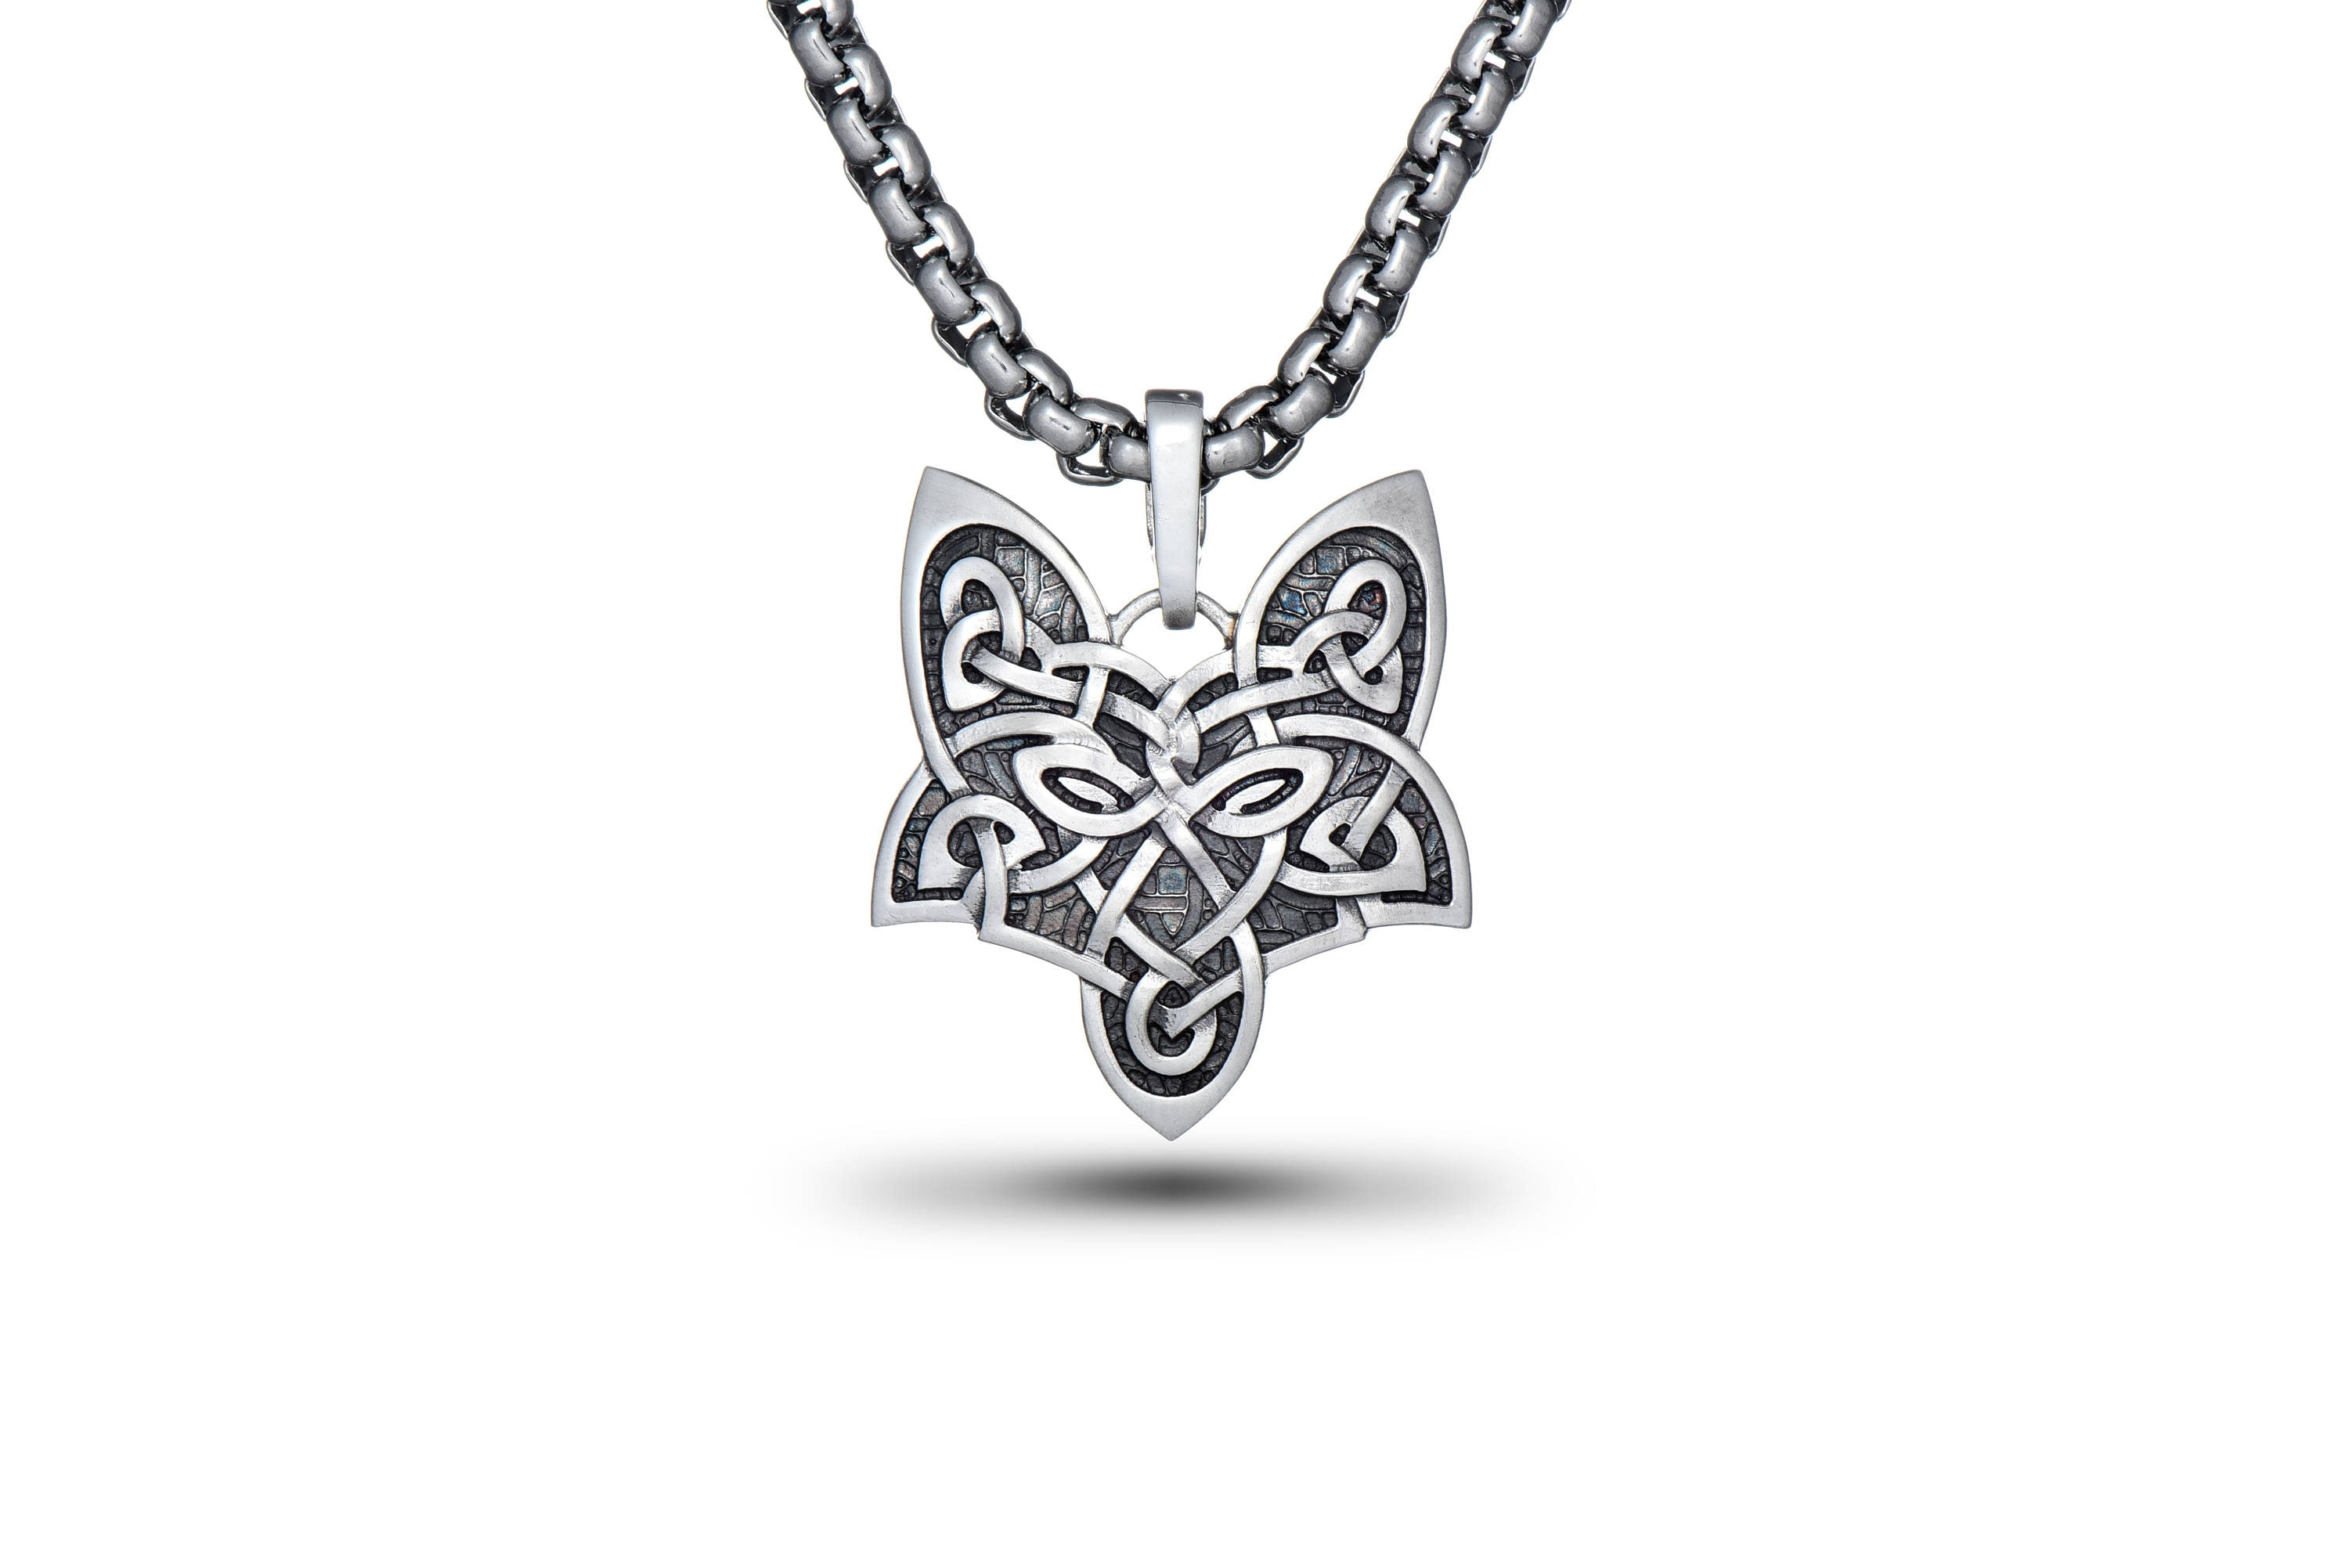 upstate pendant digital olympus camera ramblings necklace celtic giveaway fashionista of knot